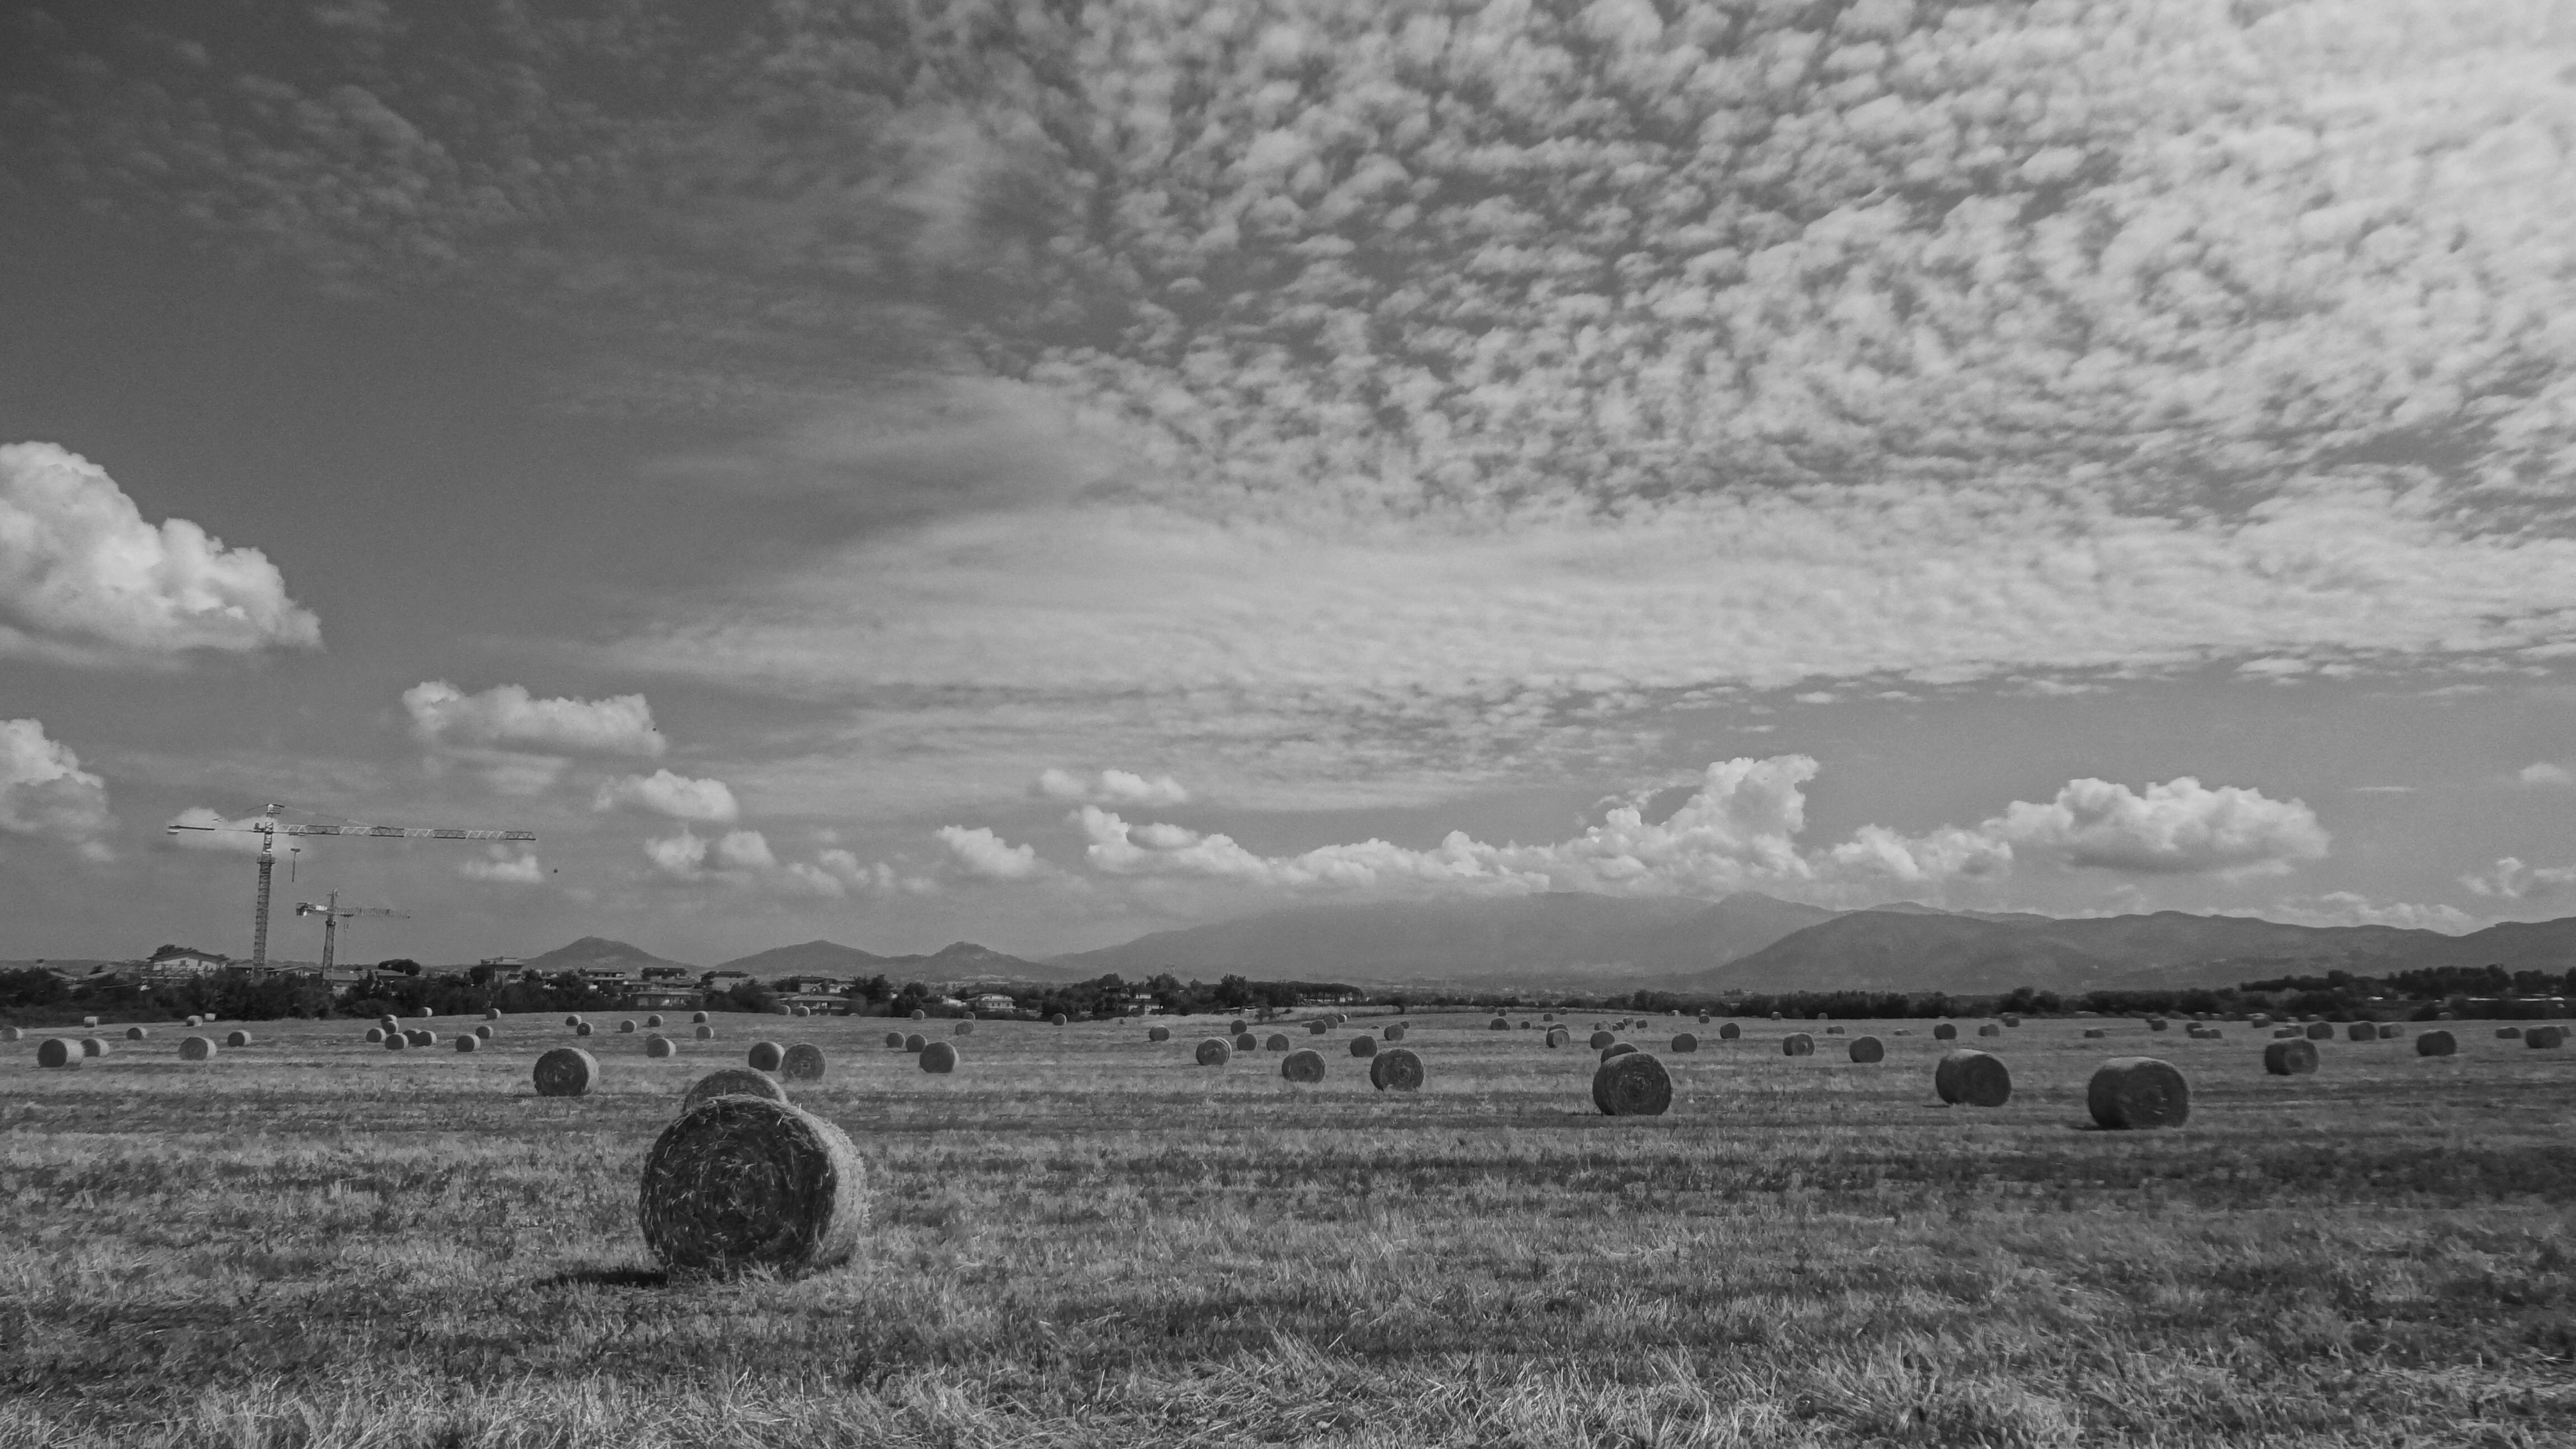 agriculture, rural scene, sky, nature, landscape, cloud - sky, outdoors, no people, tranquility, scenics, beauty in nature, bale, day, tree, hay bale